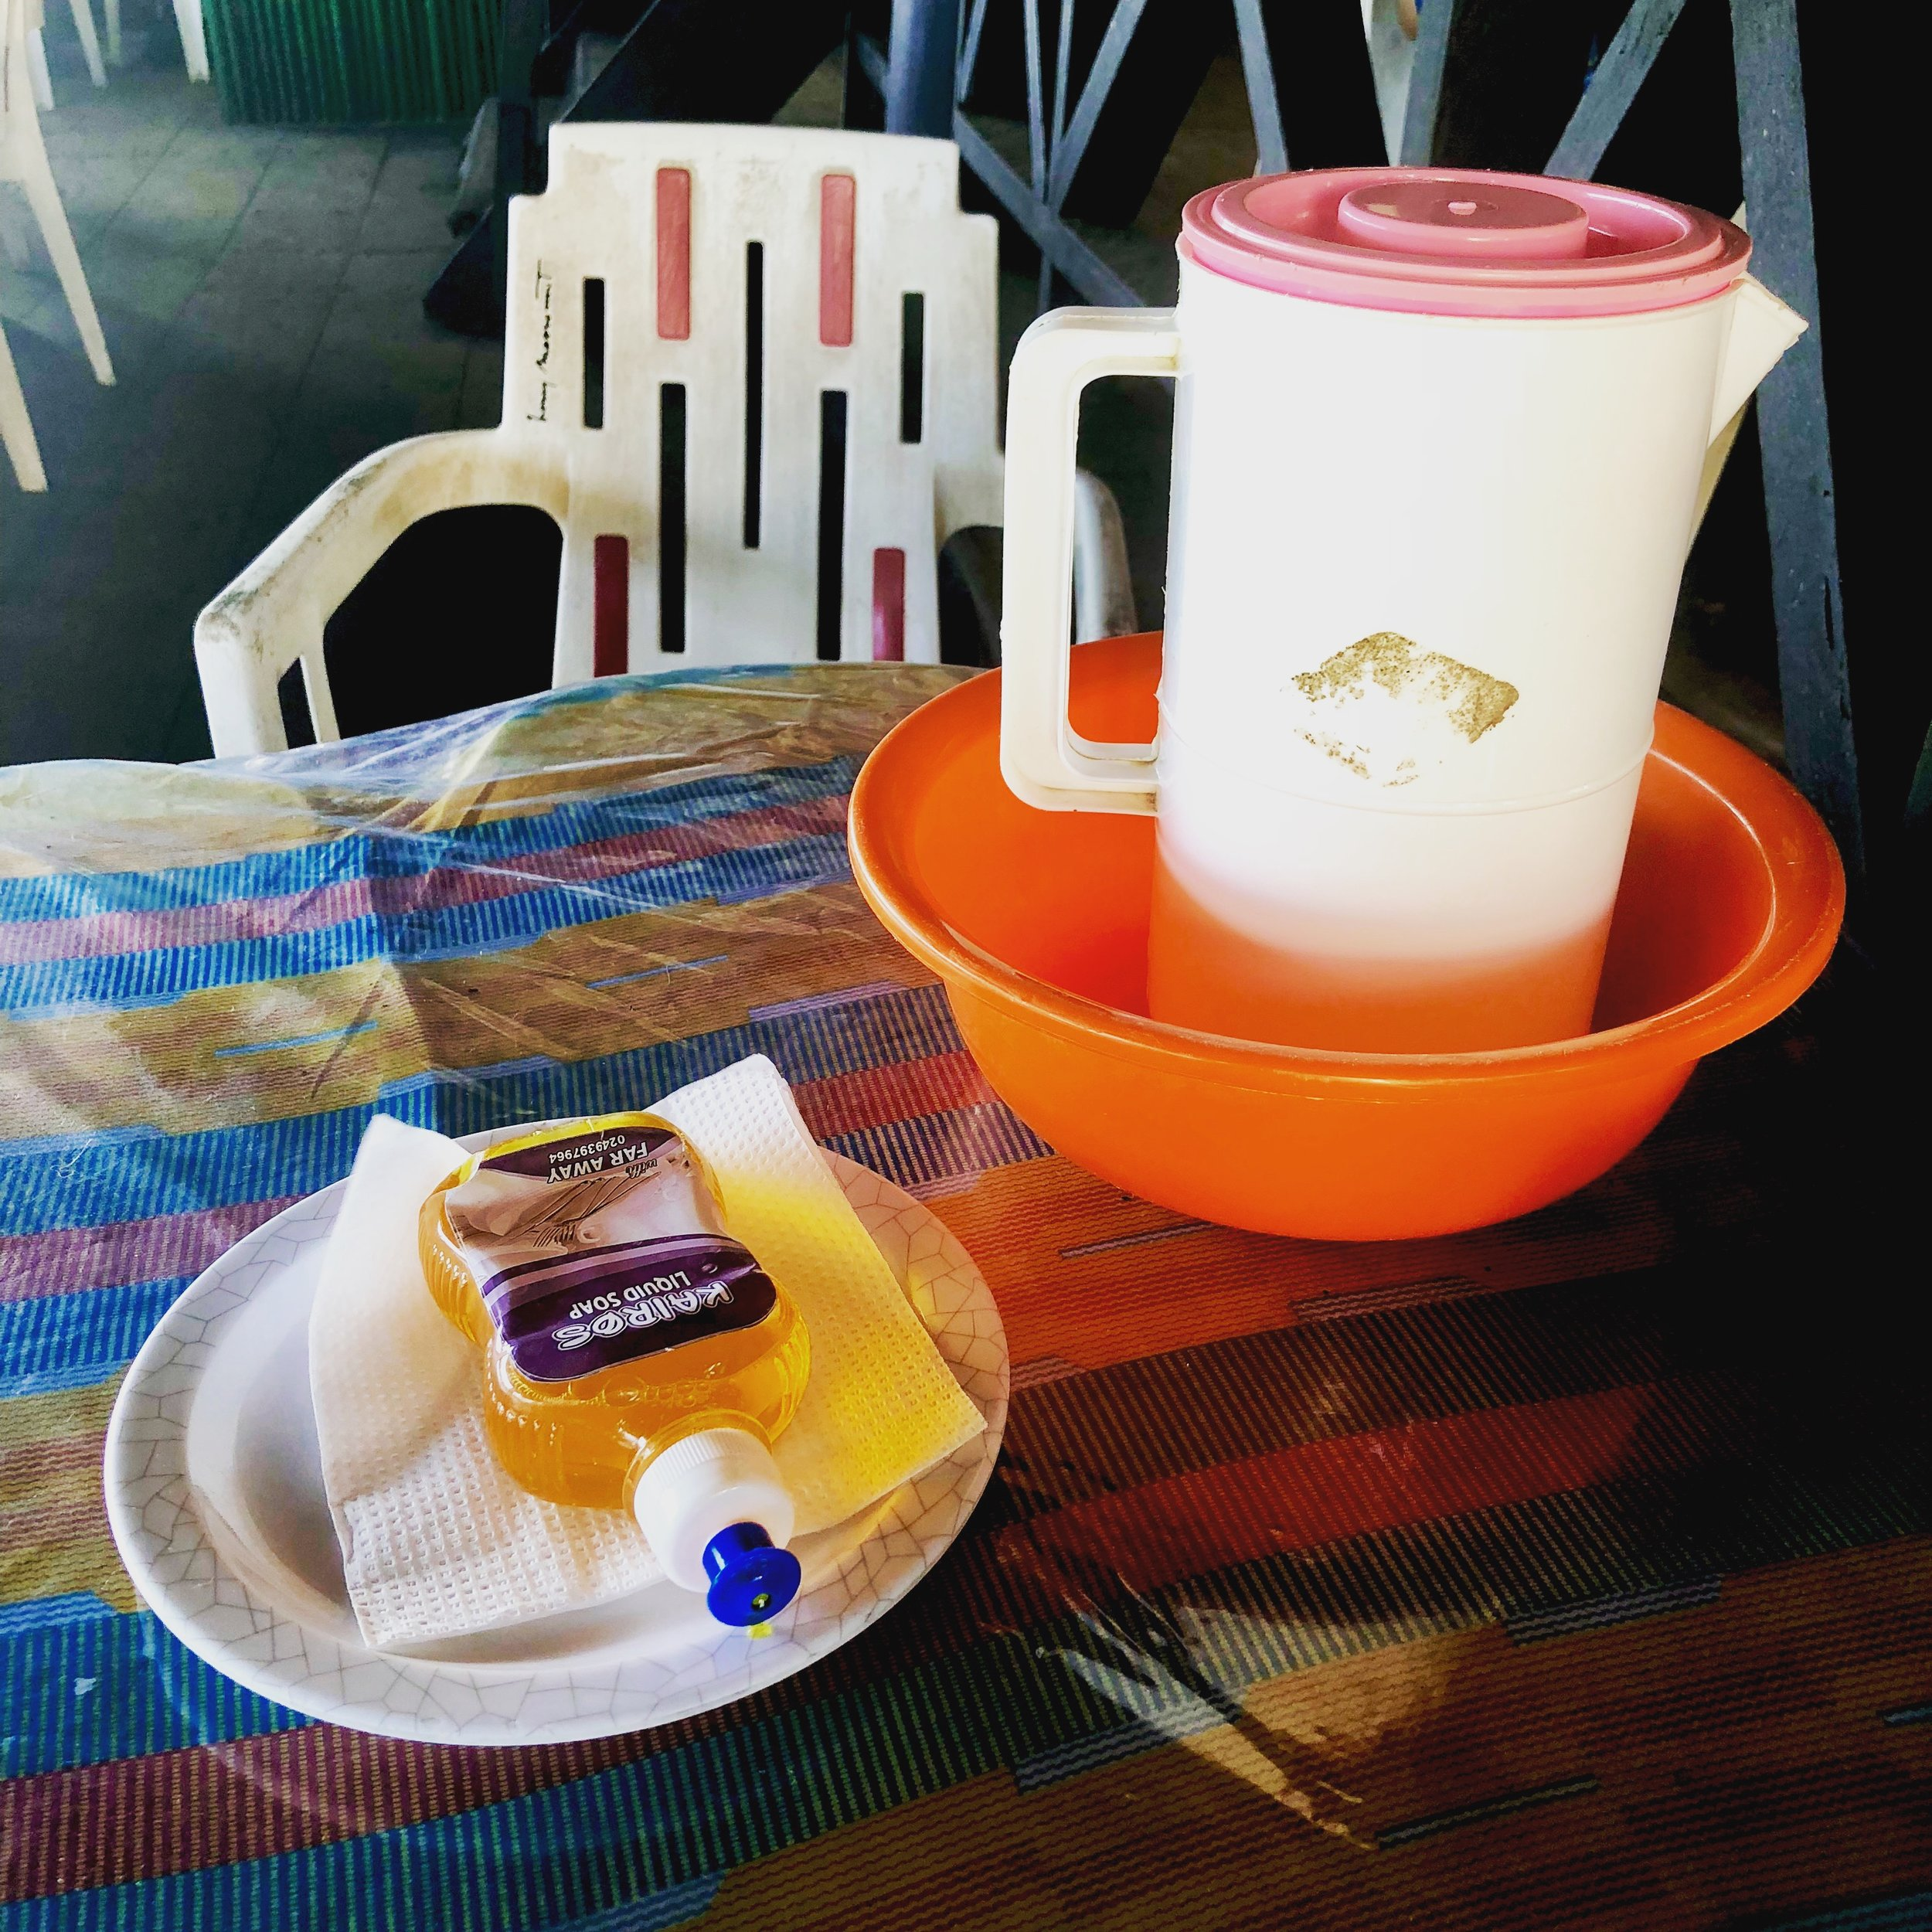 Typical hand washing supplies on restaurant tables in Ghana.